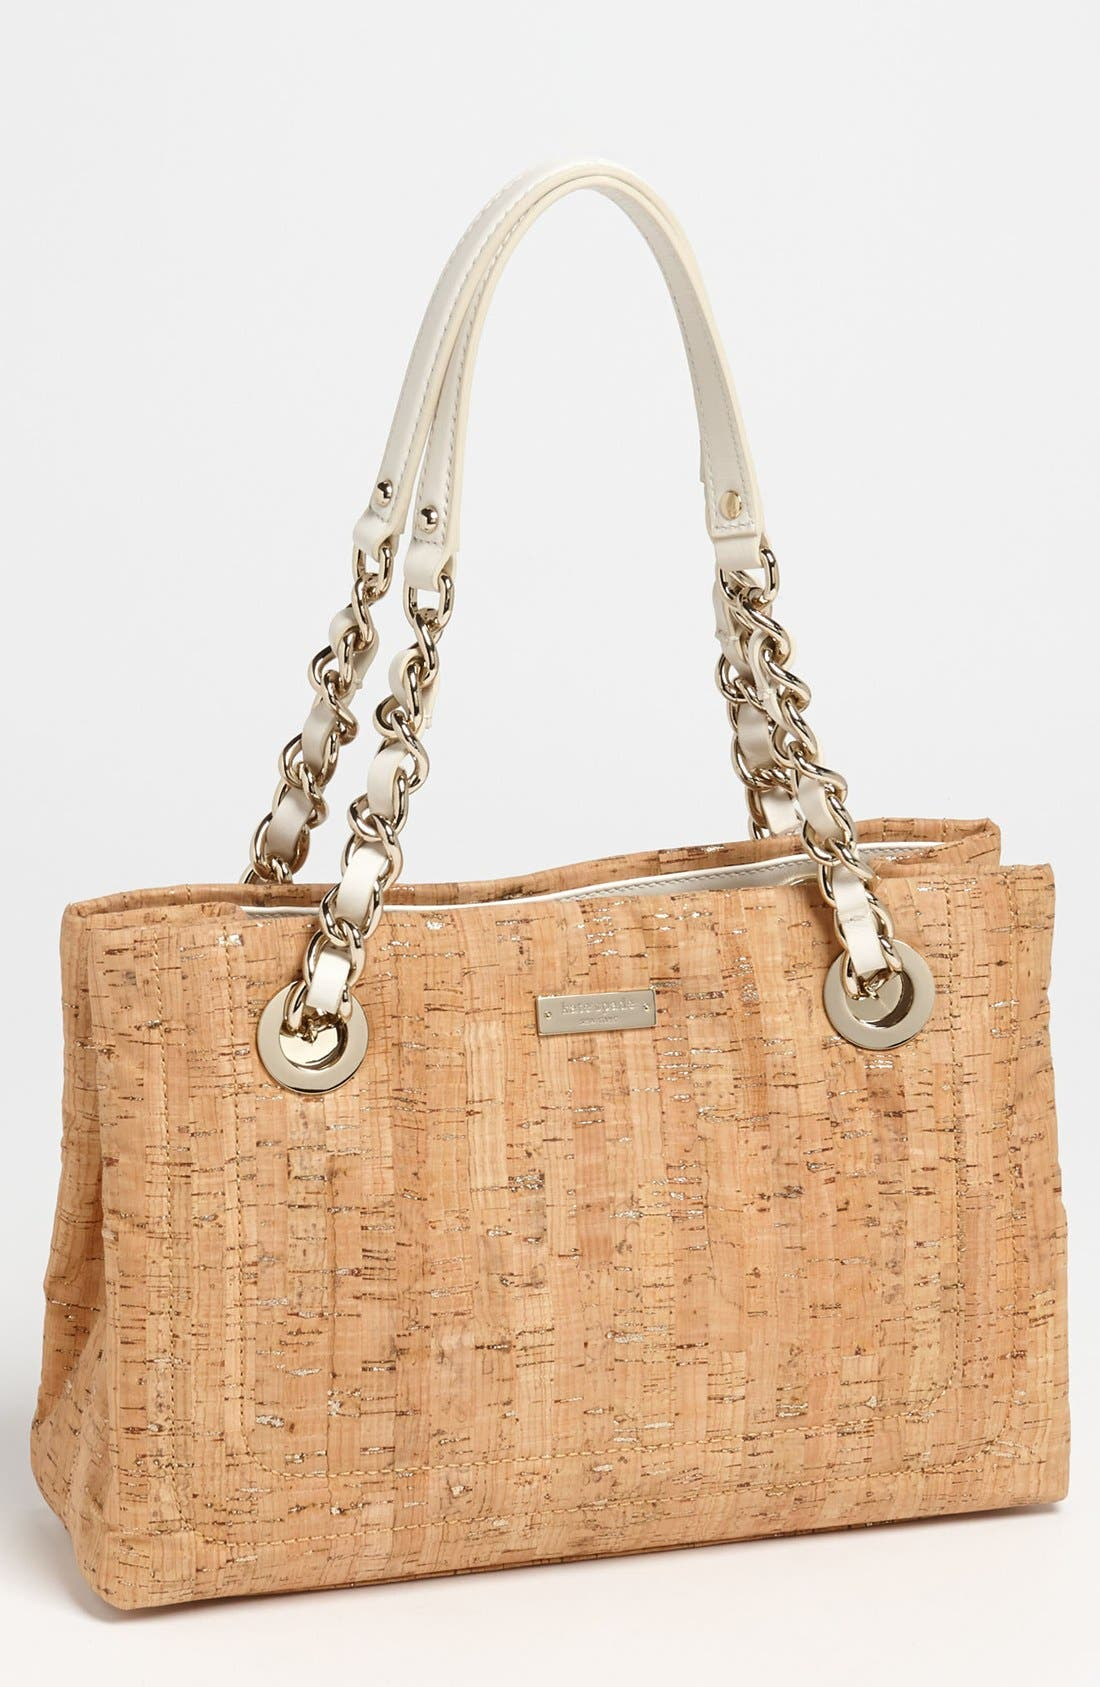 Alternate Image 1 Selected - kate spade new york 'small helena' cork tote